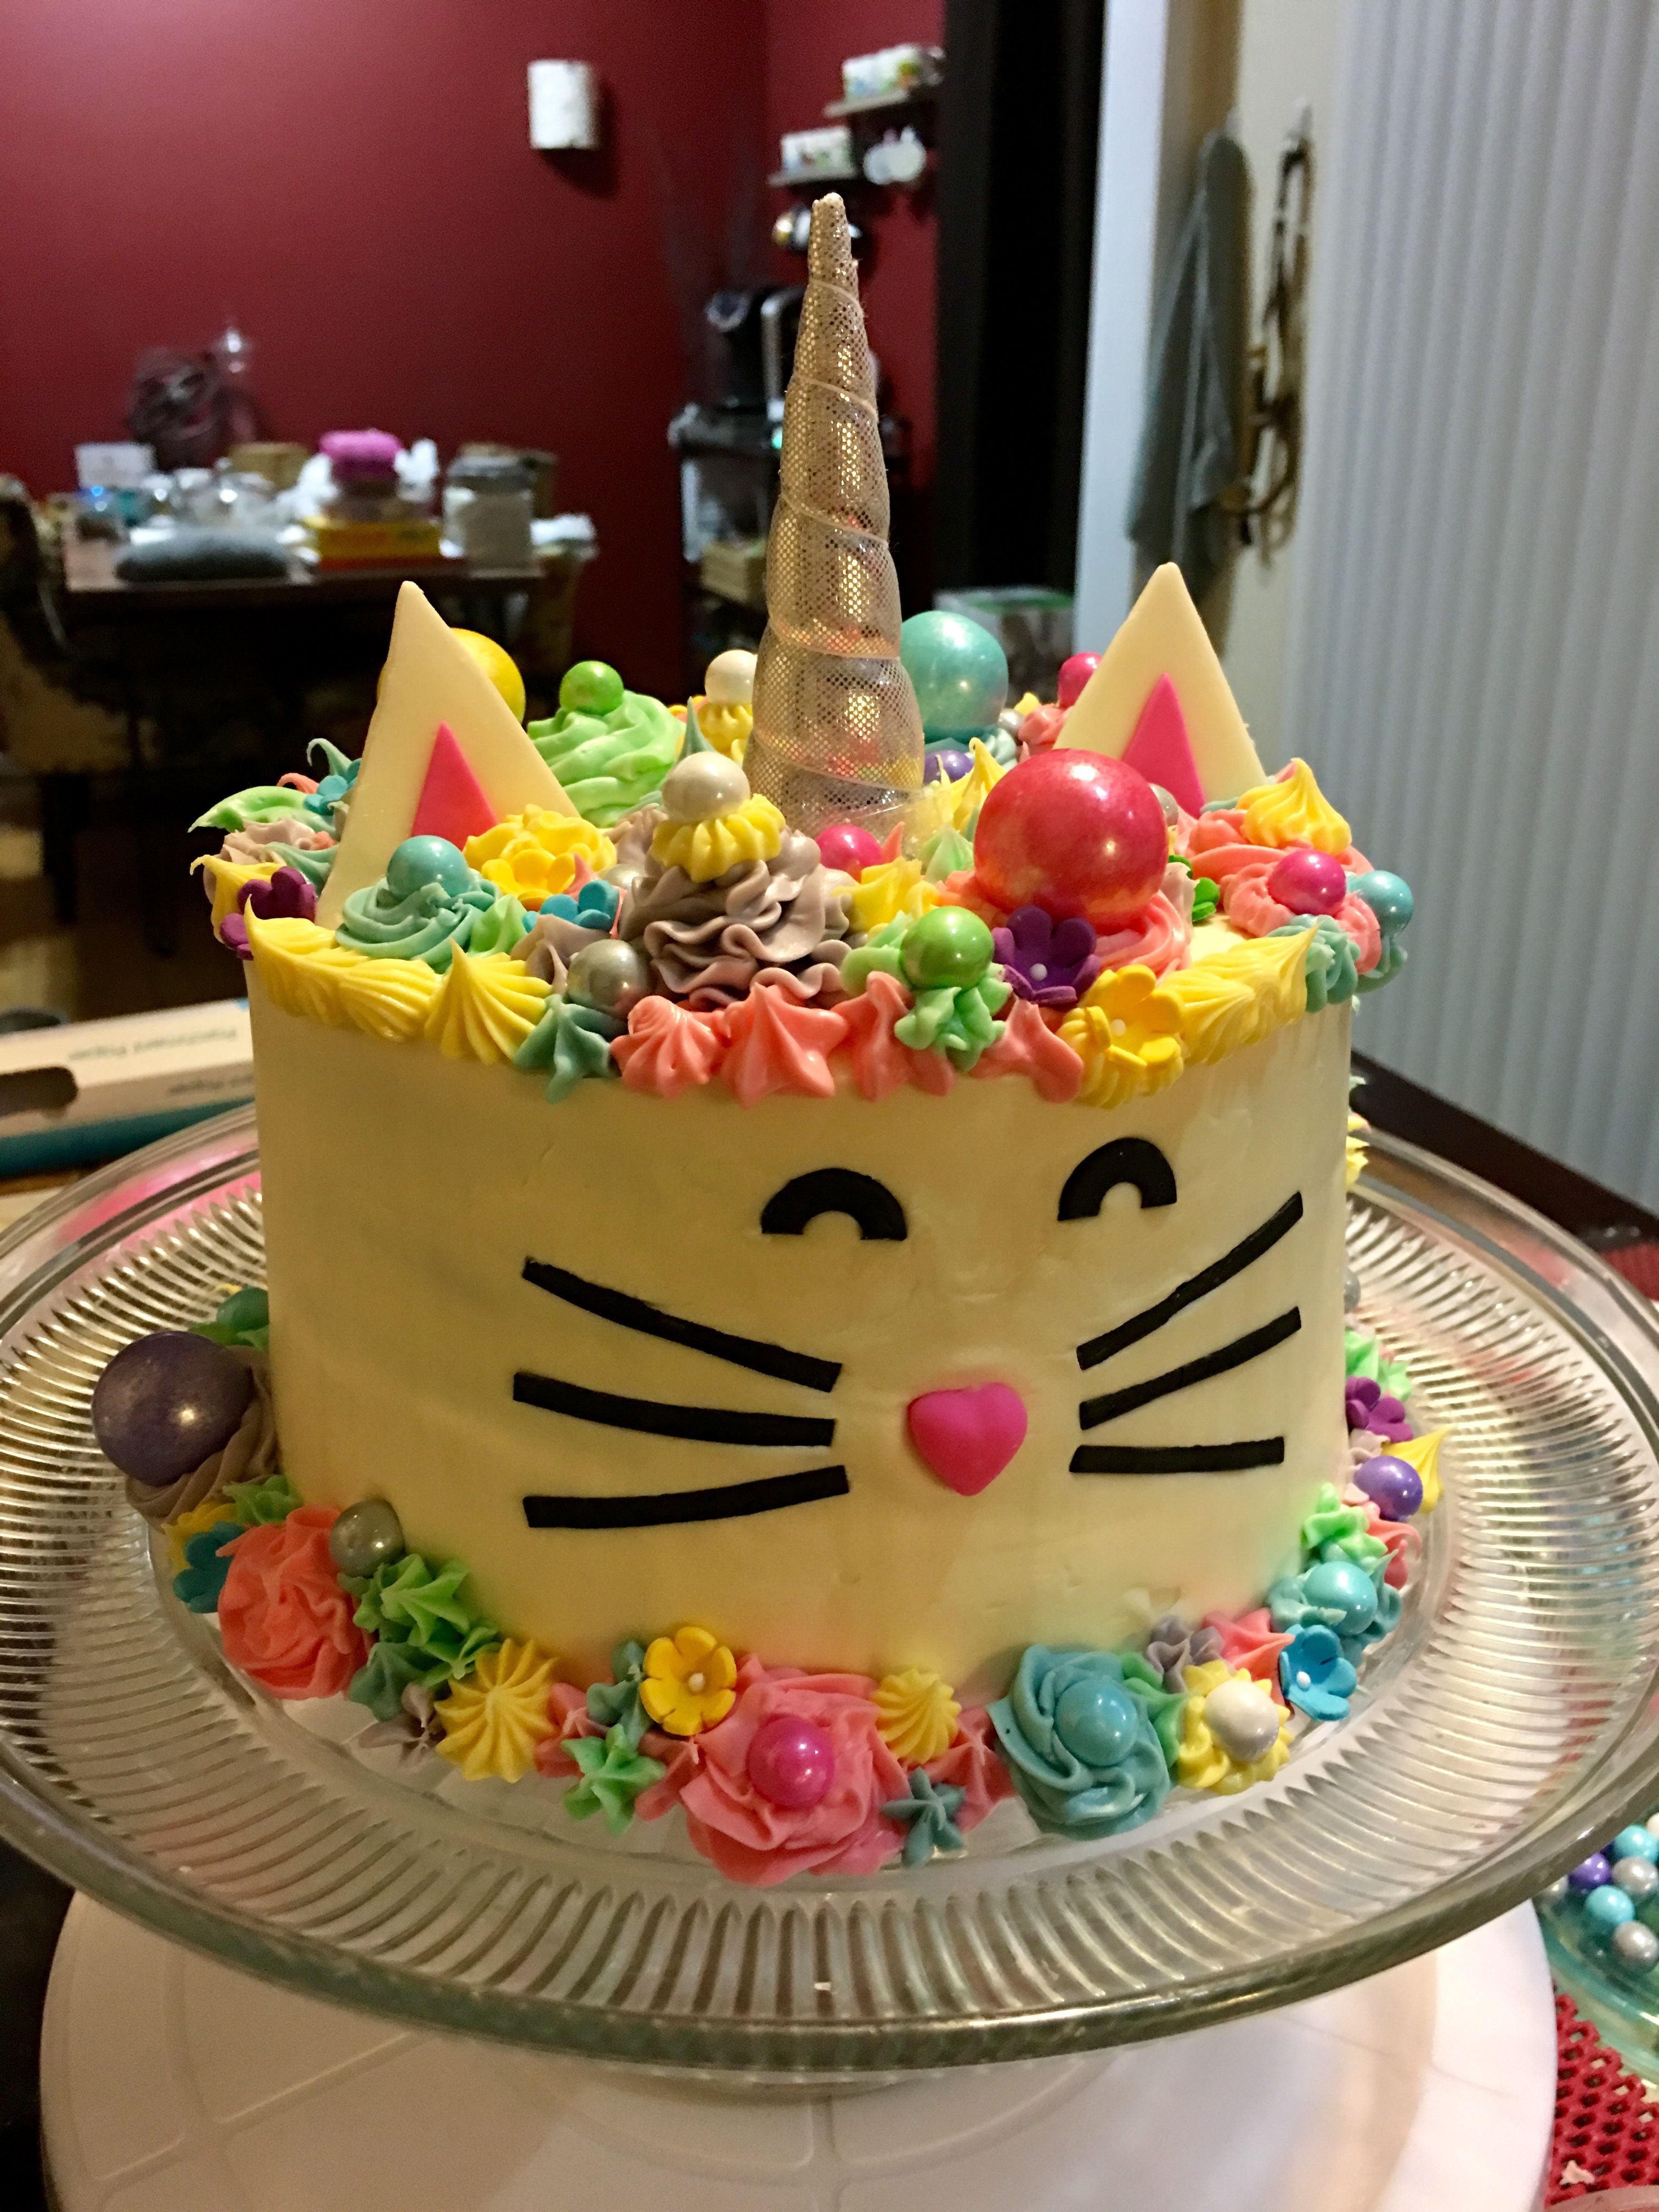 4032 In 32 Elegant Photo Of Cat With Birthday Cake